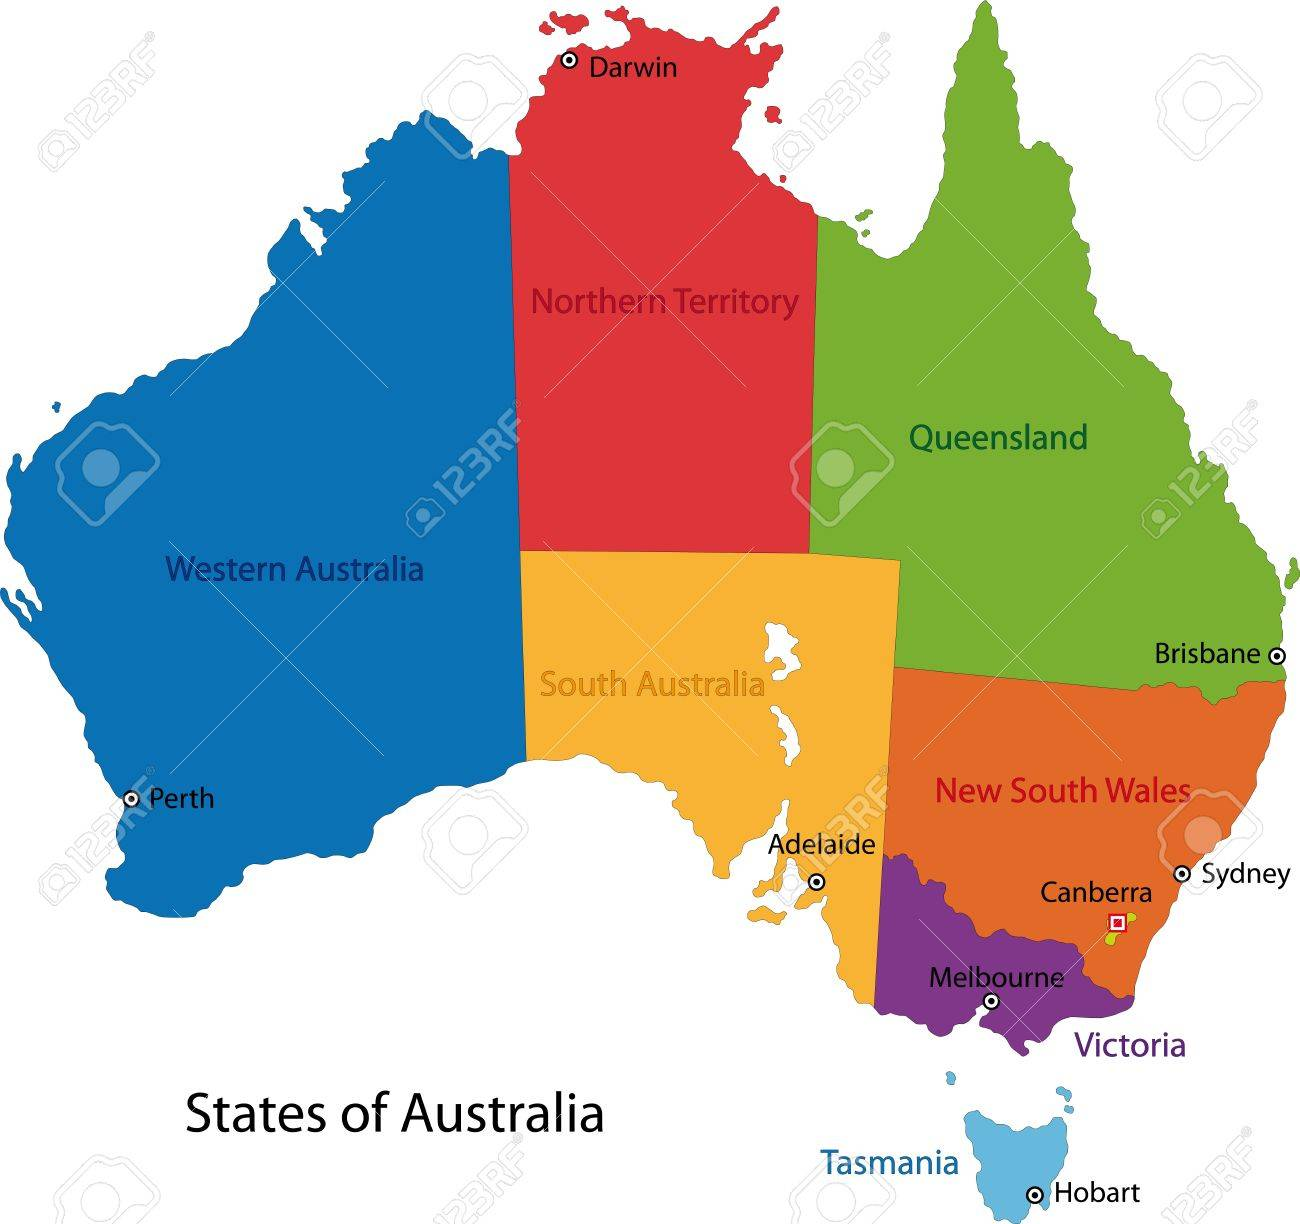 Australia Map Main Cities.Colorful Australia Map With Regions And Main Cities